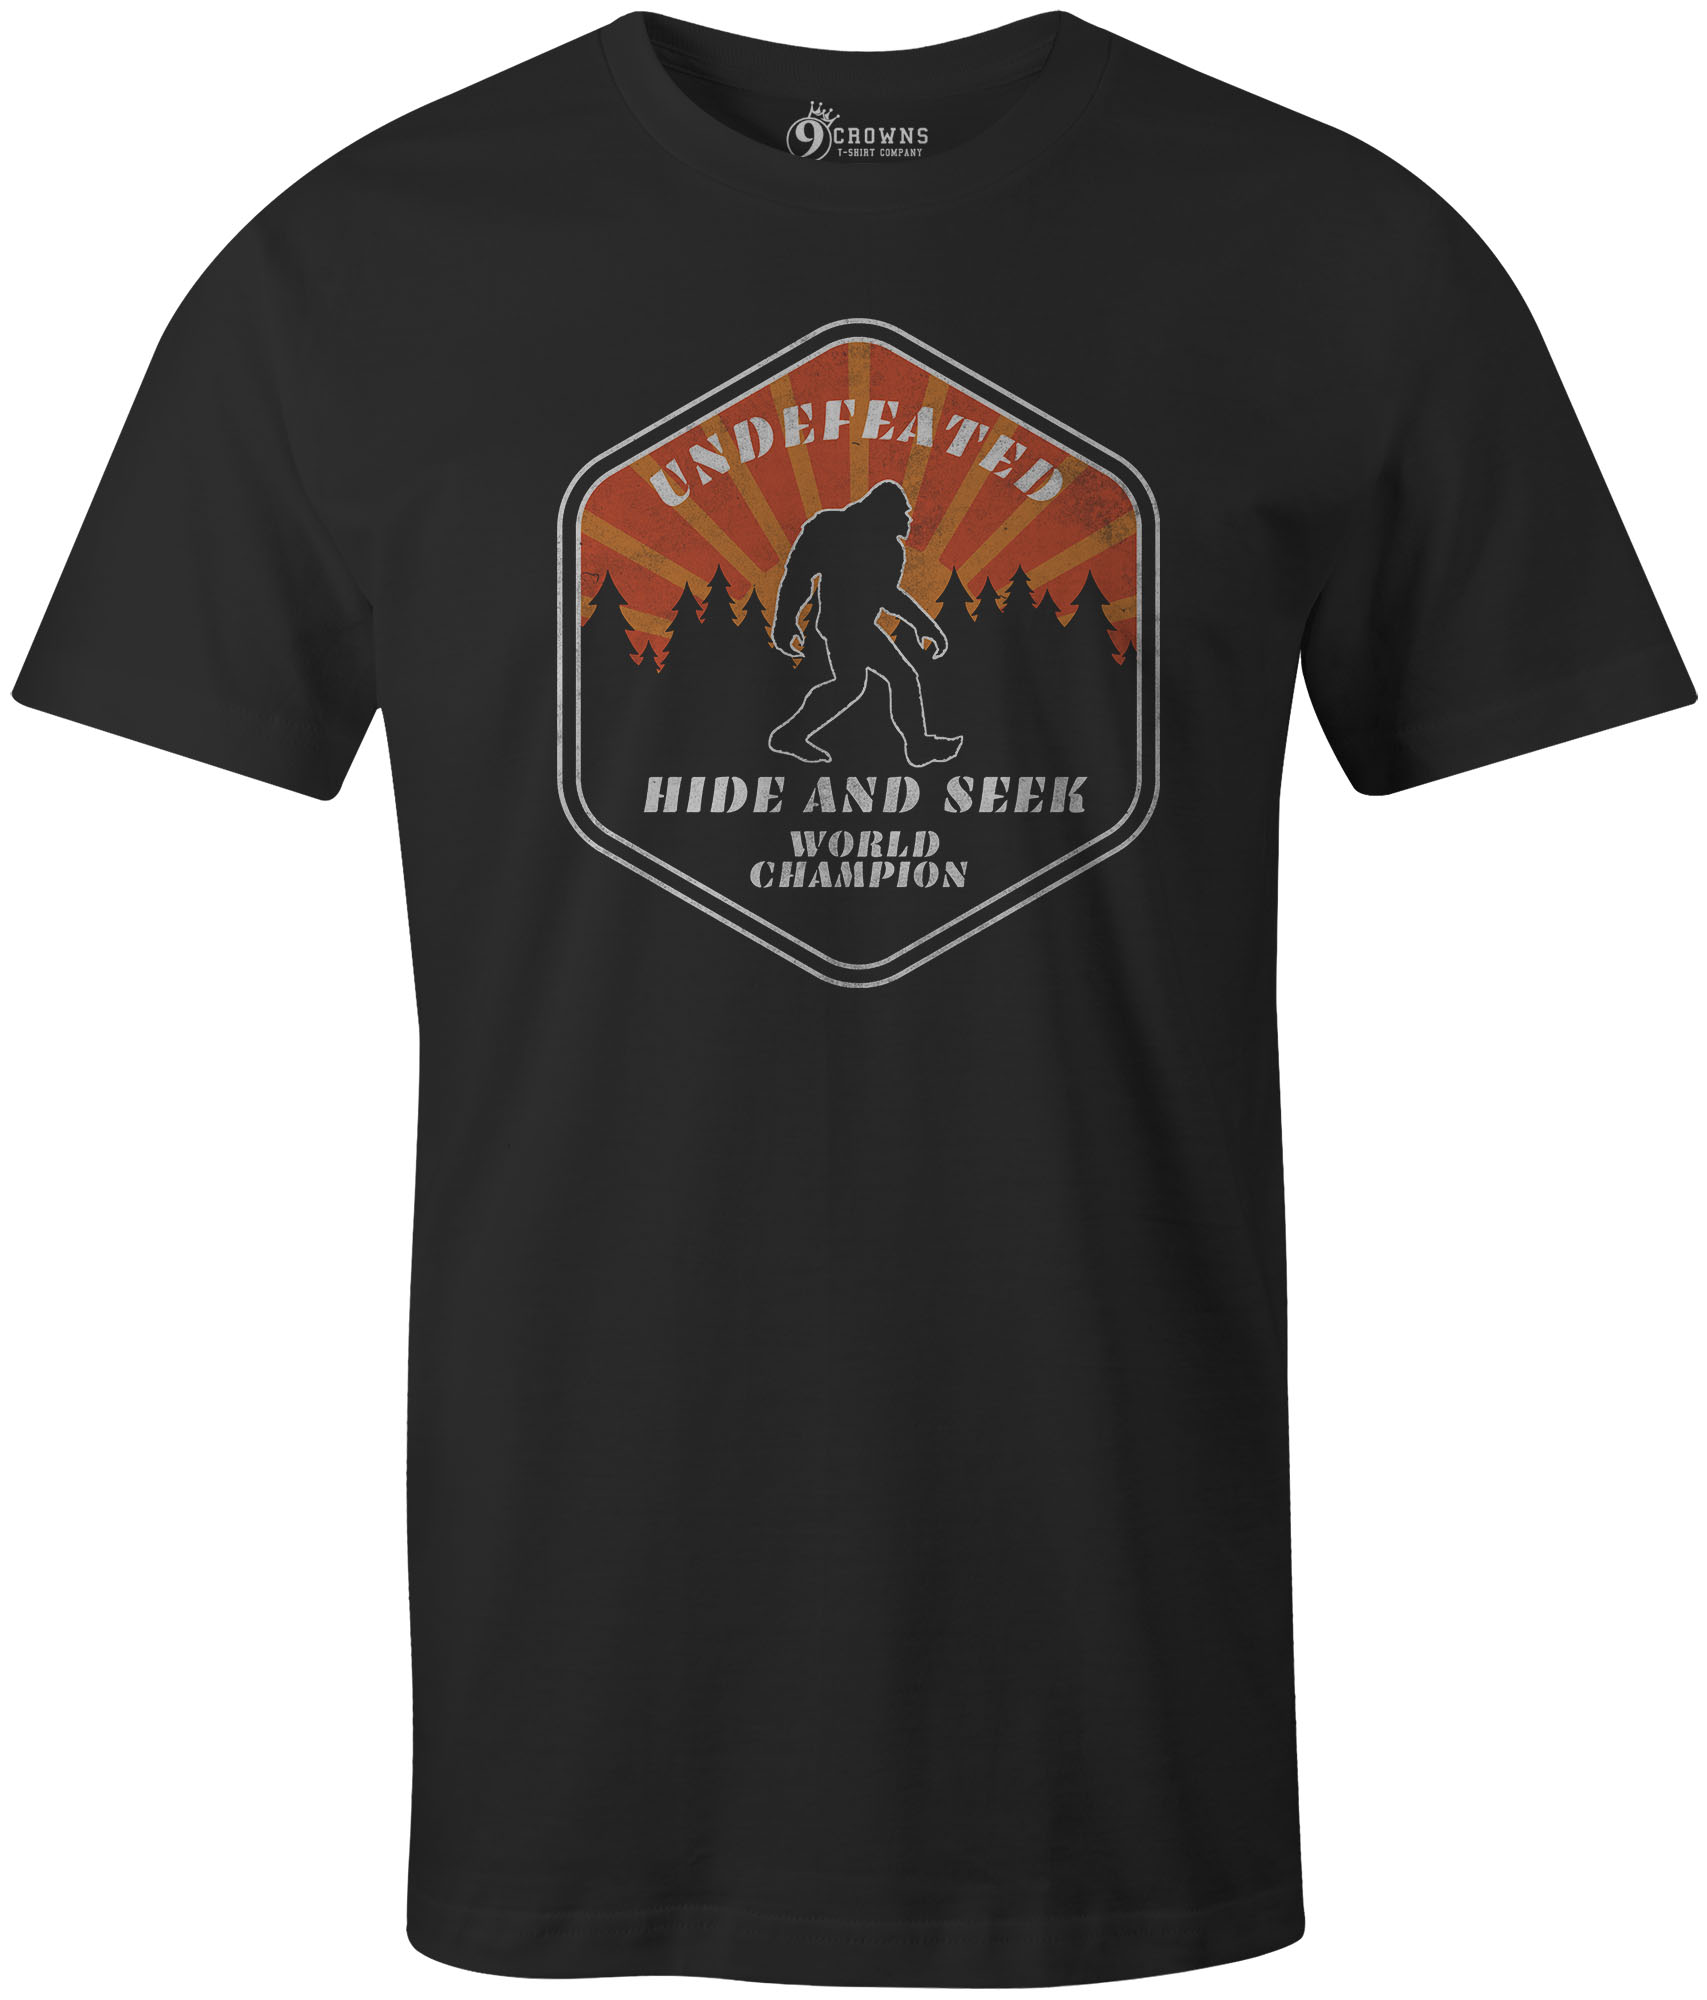 c24da50ea 9 Crowns Tees Bigfoot Undefeated Hide and Seek Champ Funny T-Shirt ...